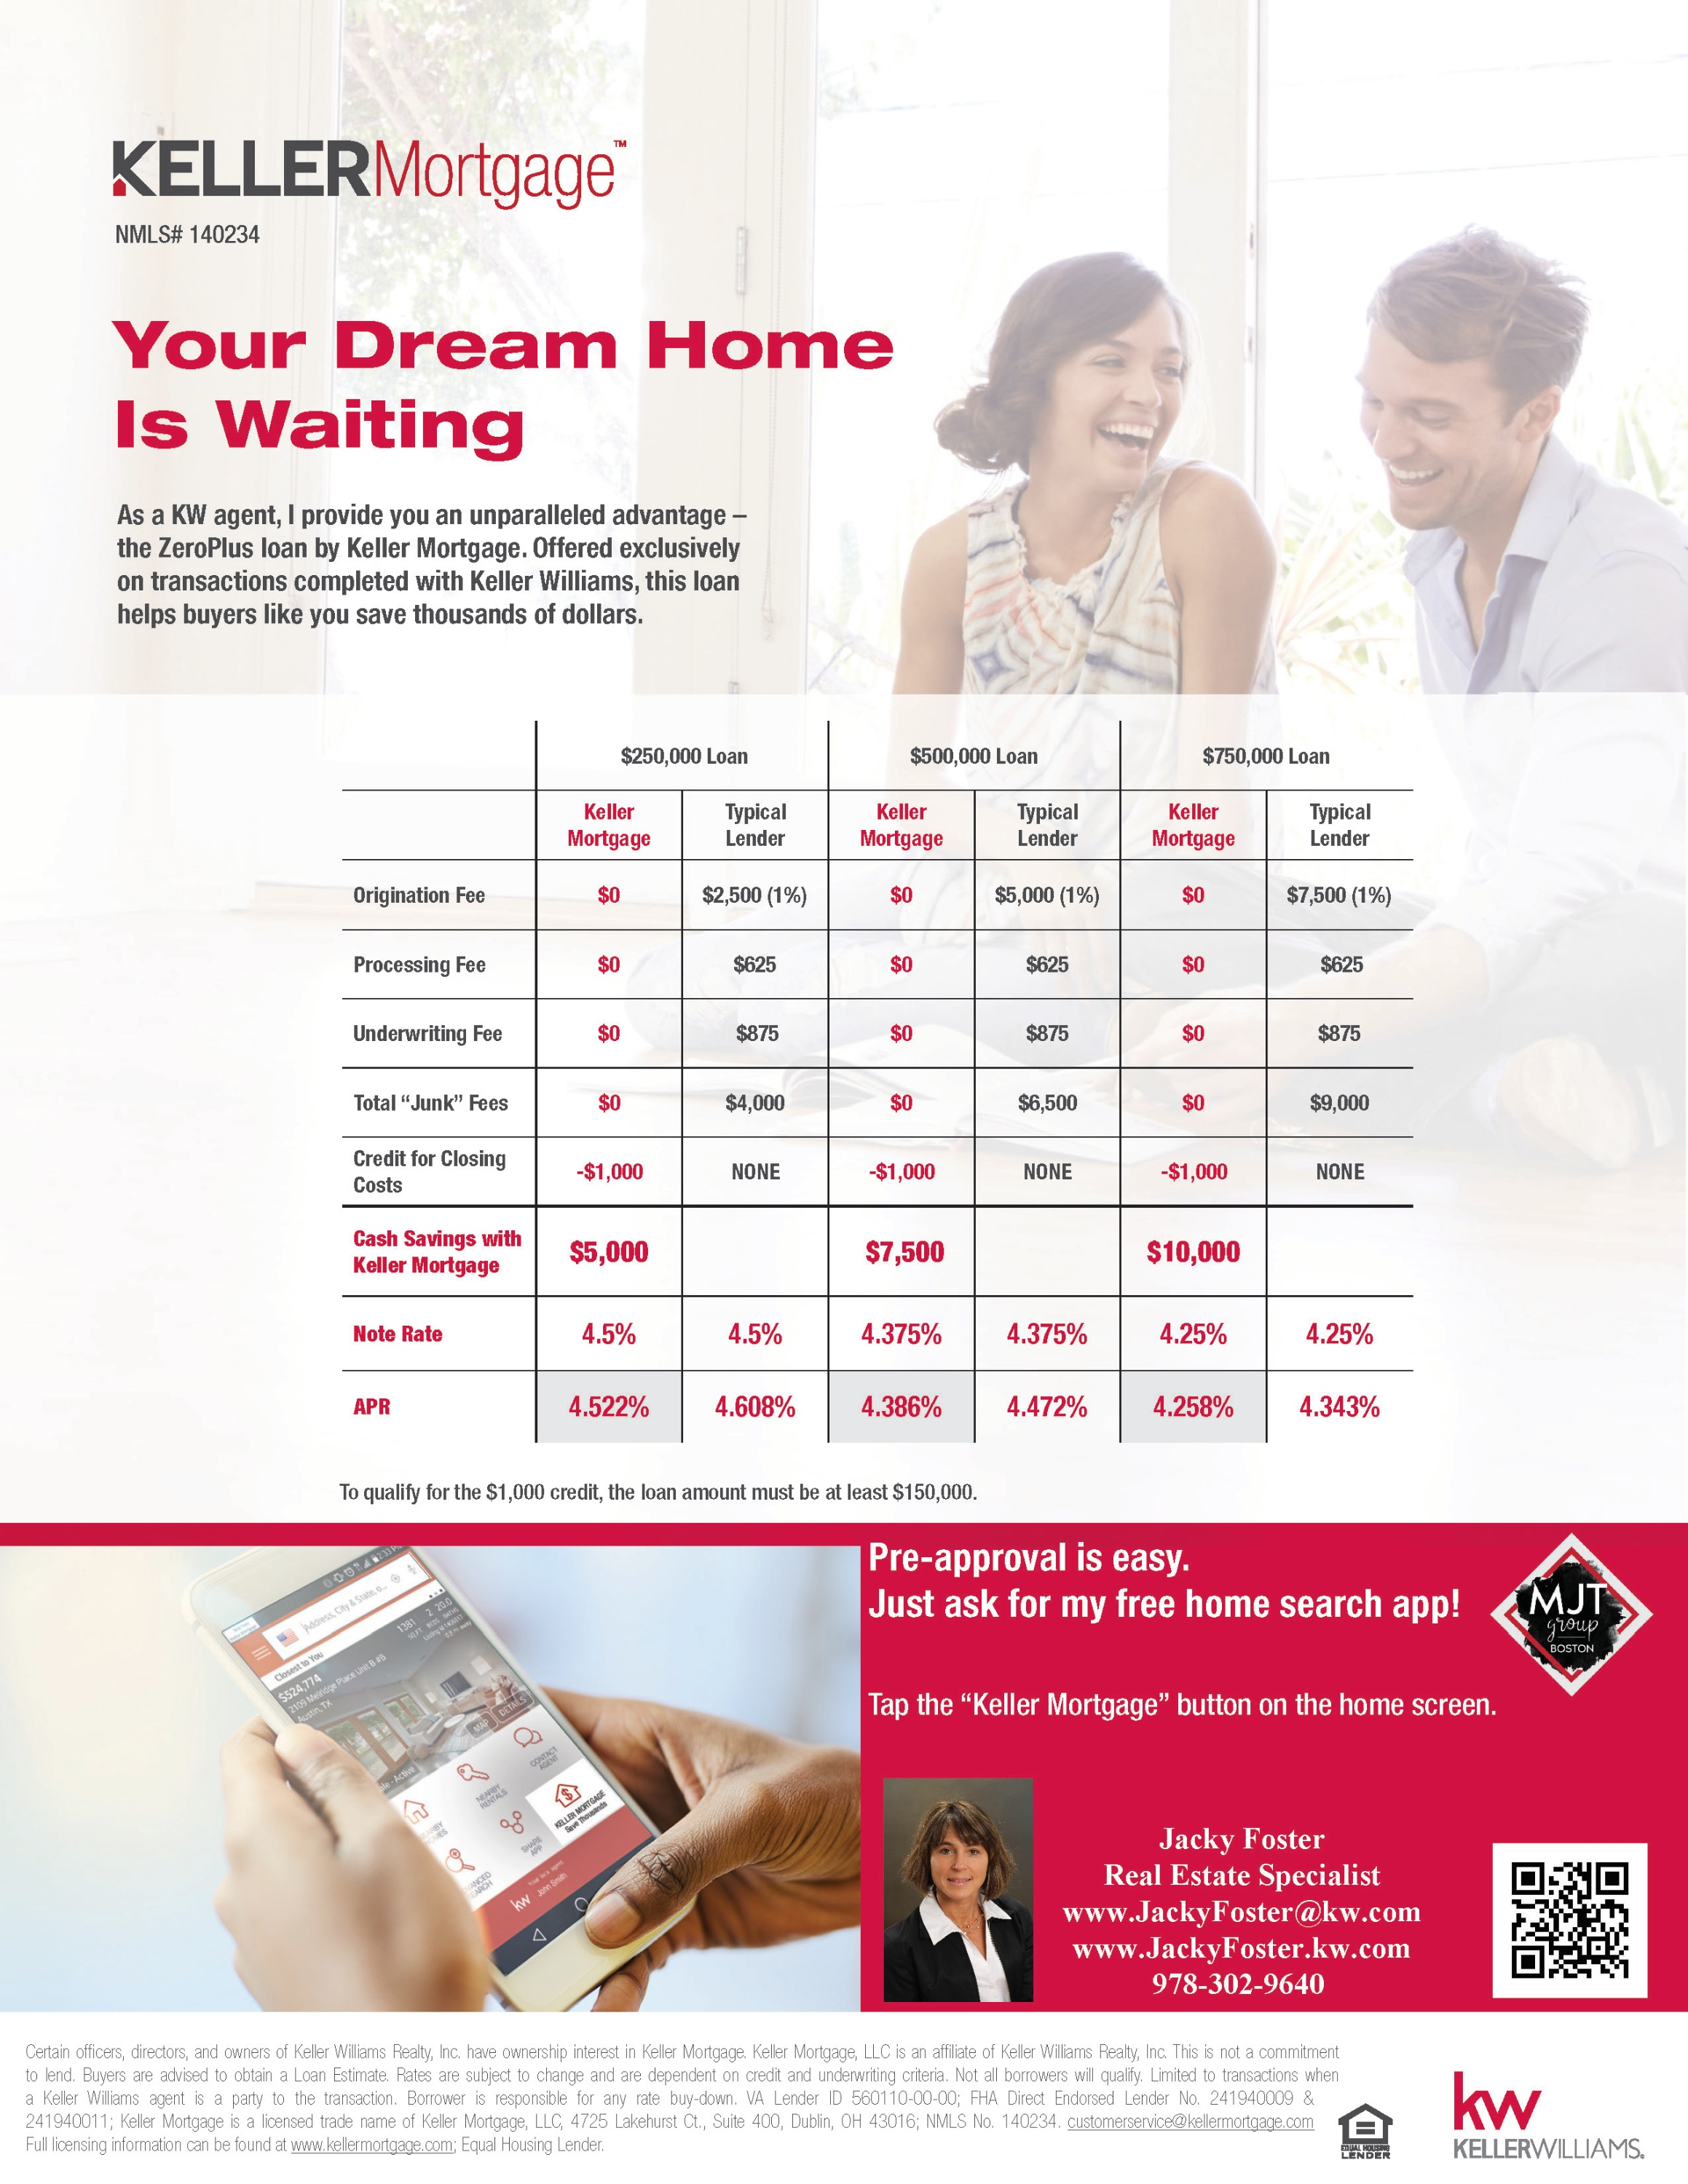 Keller Mortgage with Jacky Foster MJT Group Boston